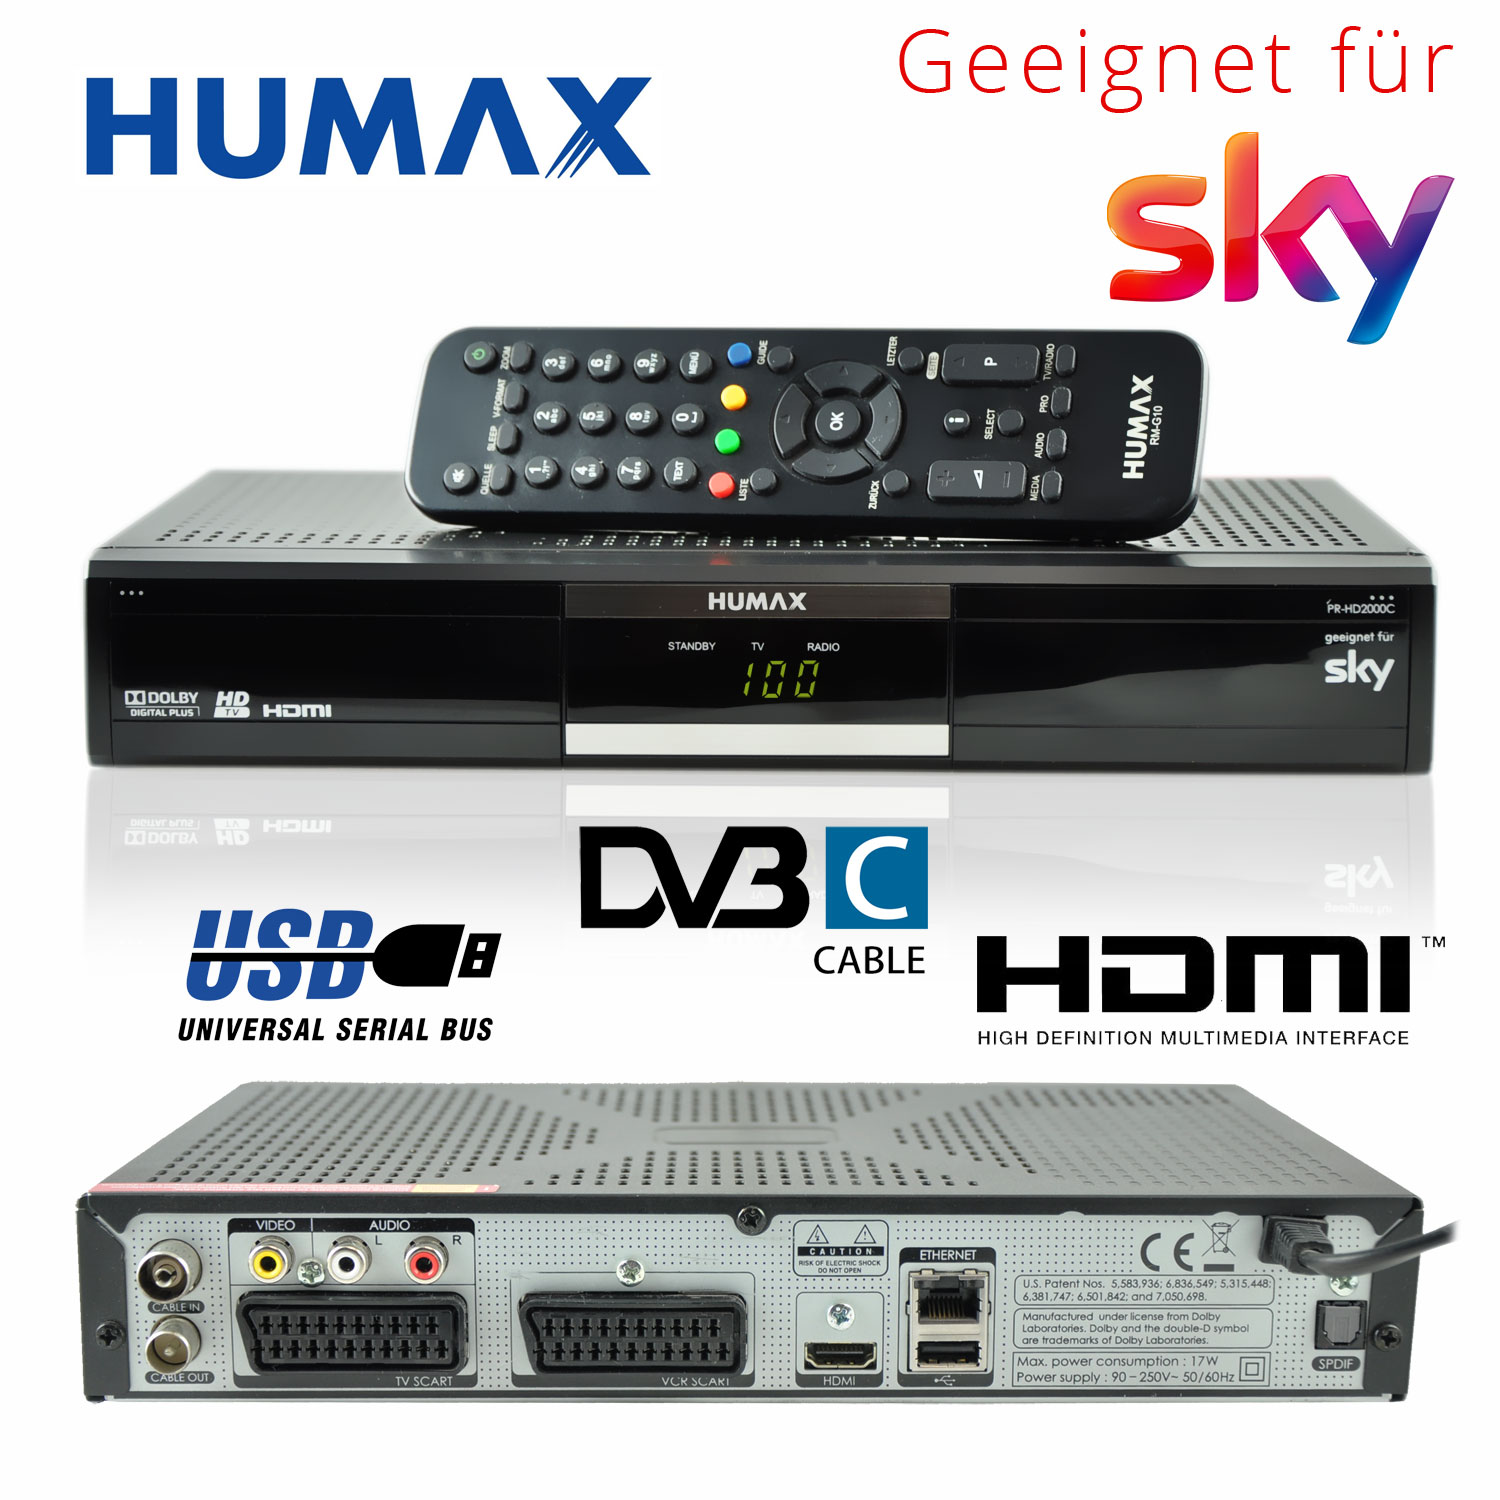 kabel receiver humax pr hd2000c digital kabelreceiver dvb c hdmi sky hd kabel ebay. Black Bedroom Furniture Sets. Home Design Ideas